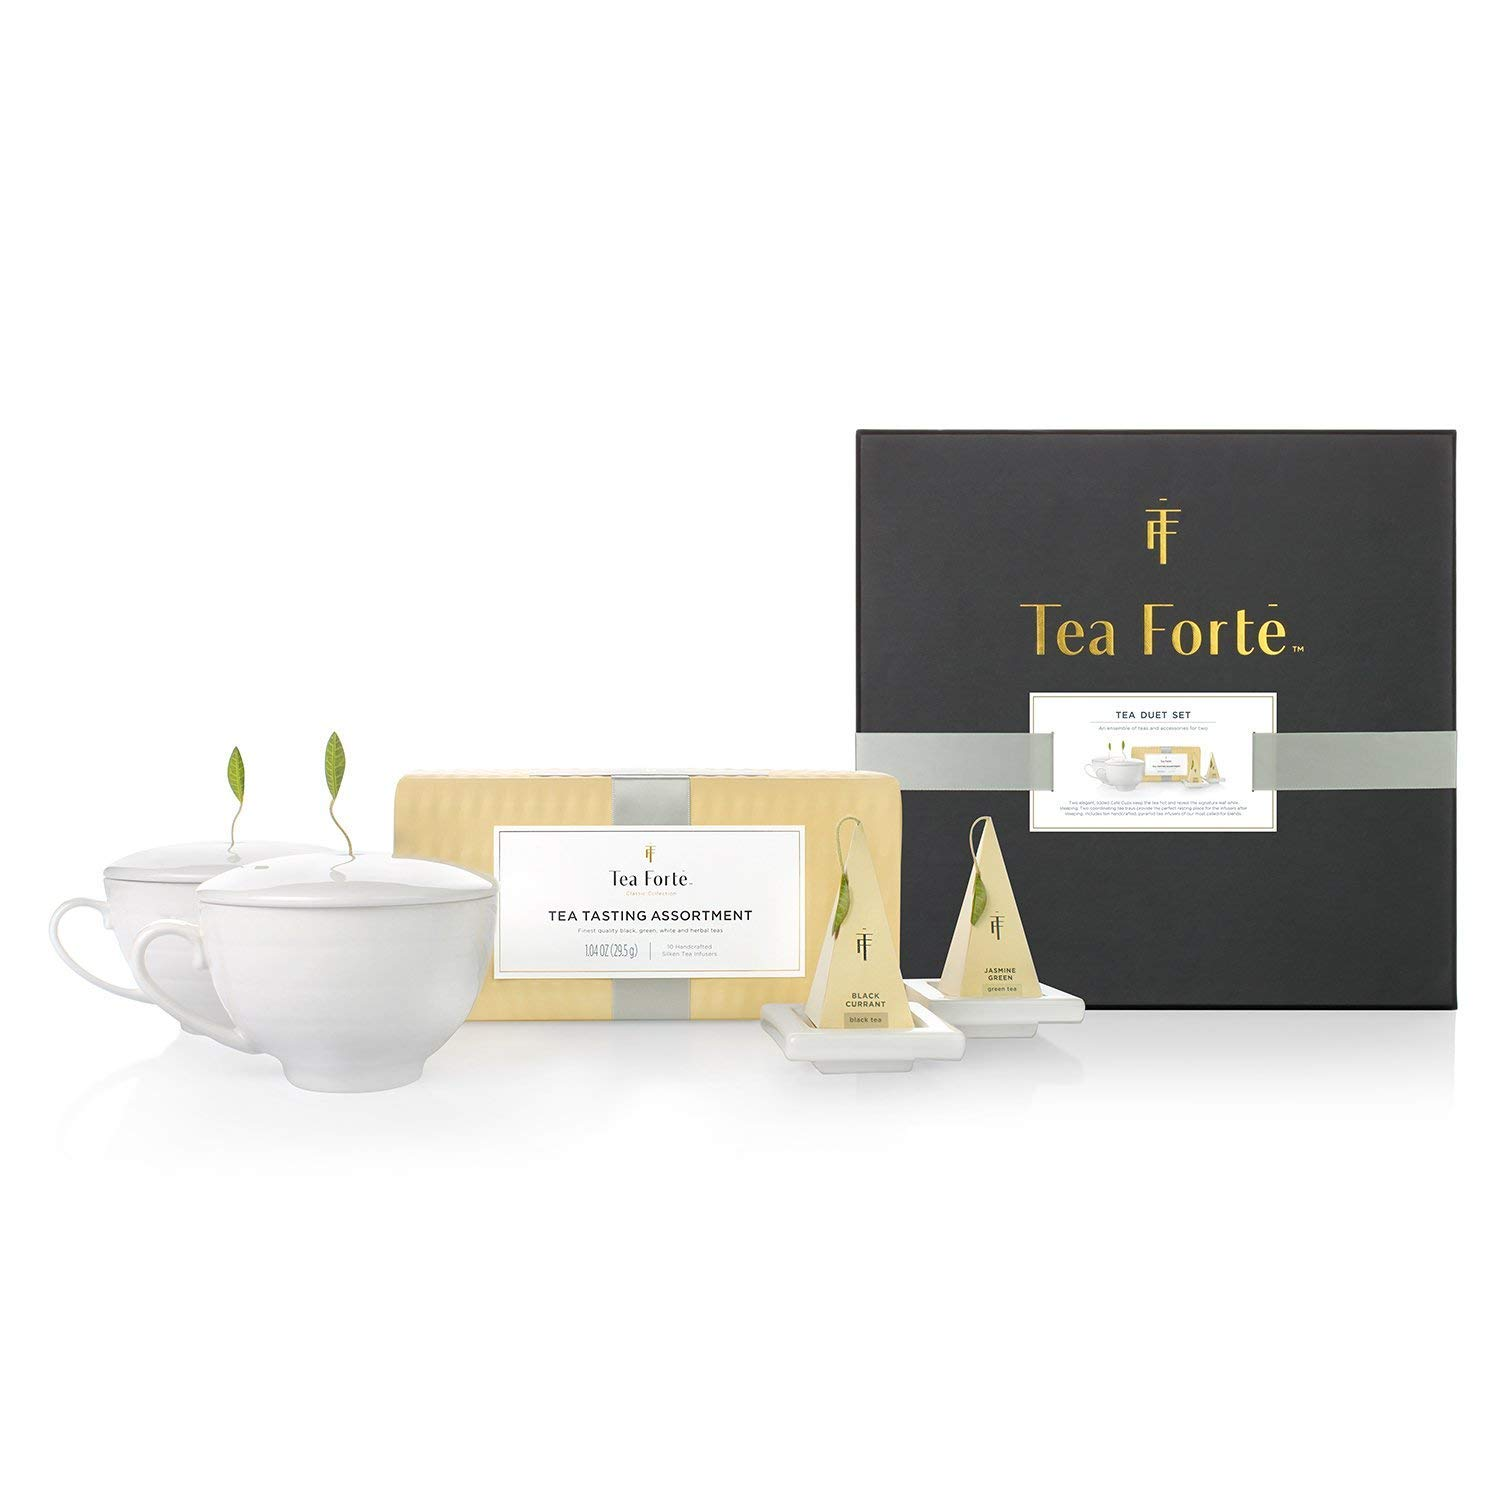 Tea Forte Duet Gift Set with Tea Tasting Petite Presentation Box, Two Cafe Cups with Lids and Two Tea Trays by Tea Forte